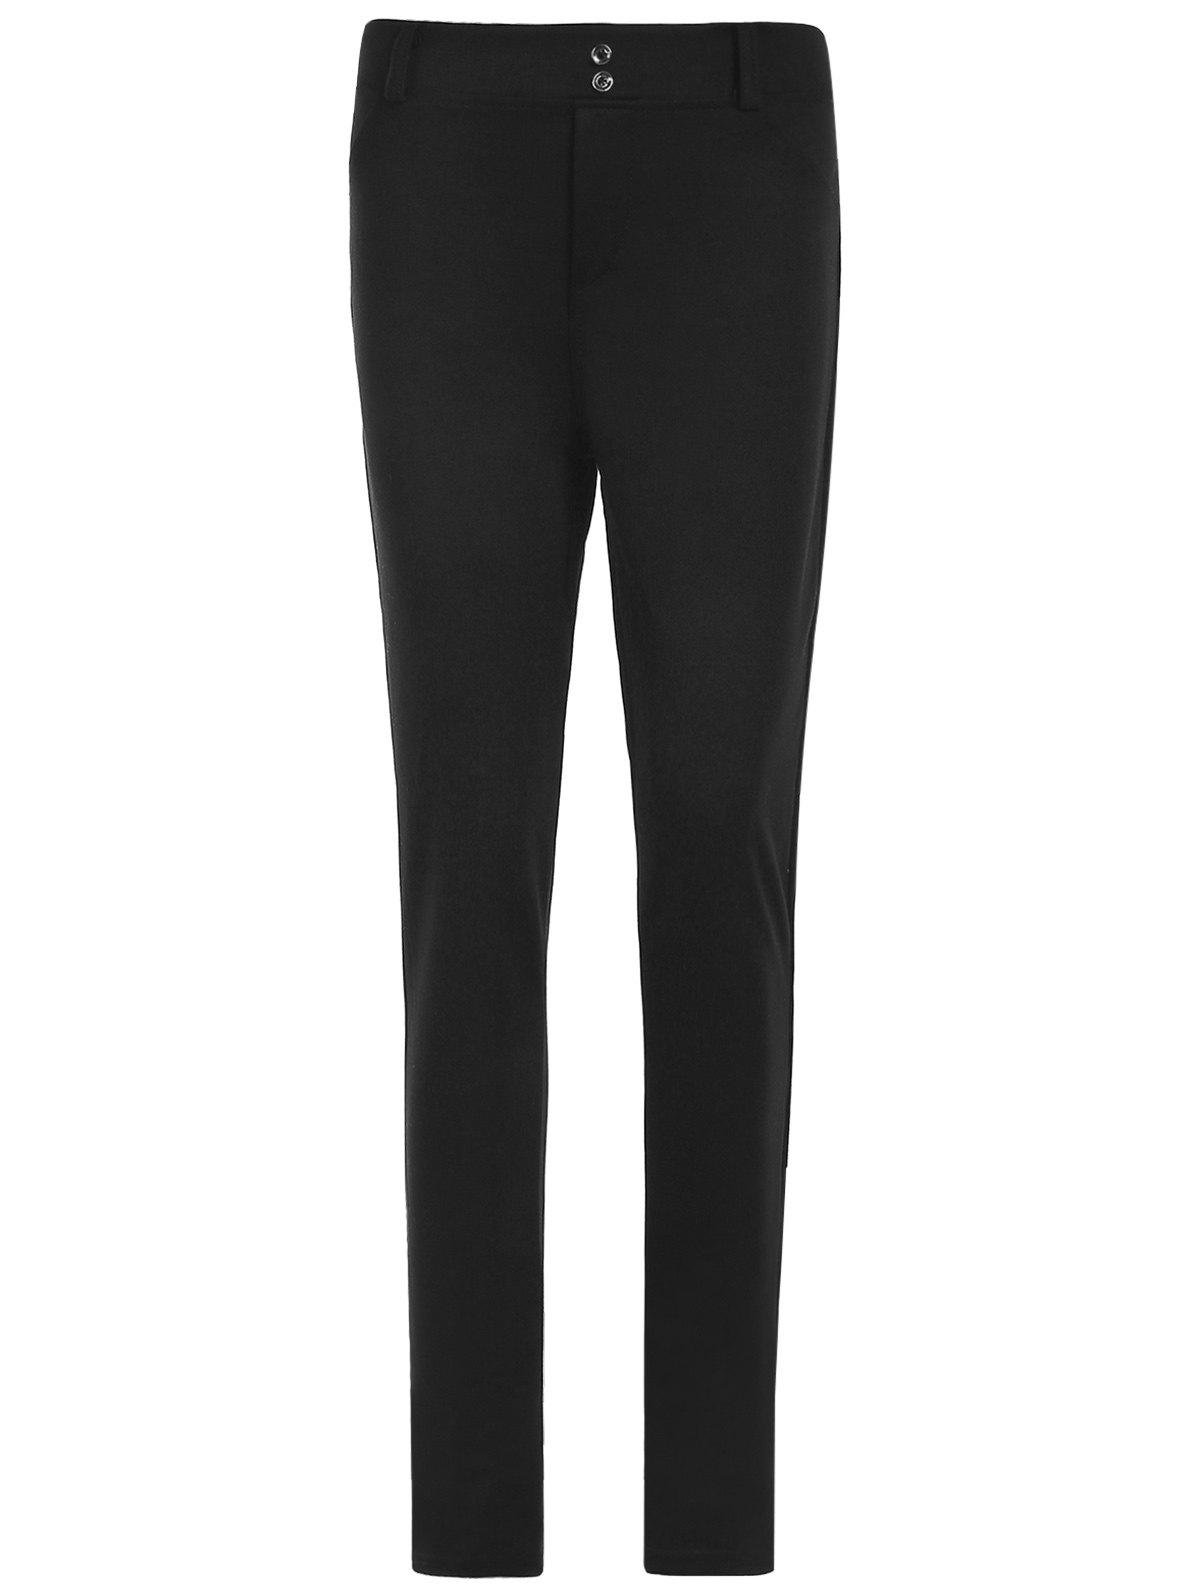 Attractive Pure Color Mid Waist Bodycon Leggings For Women - BLACK L